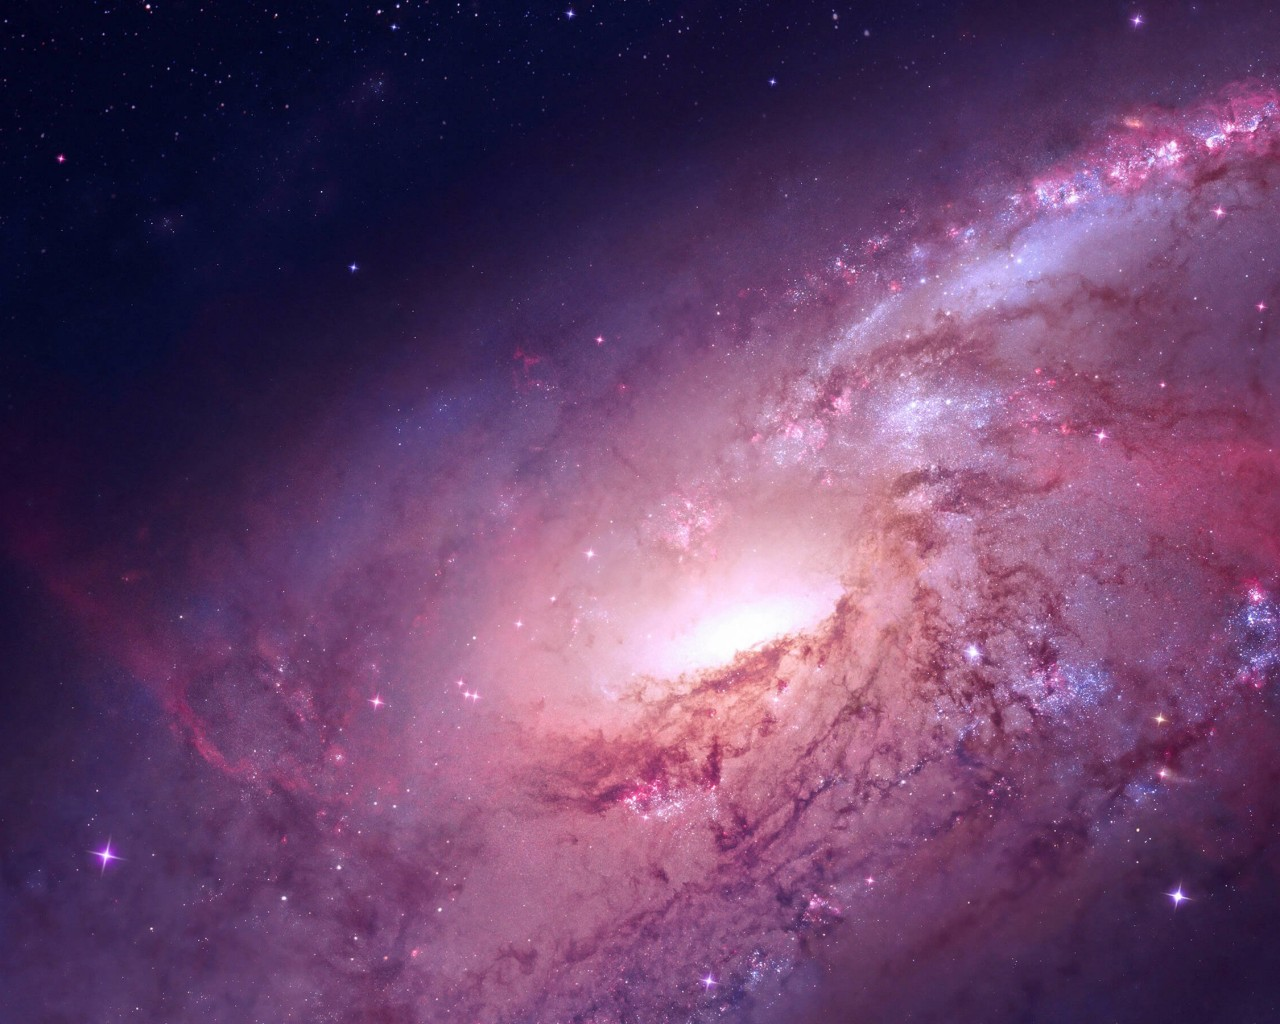 Galaxy M106 Wallpaper for Desktop 1280x1024